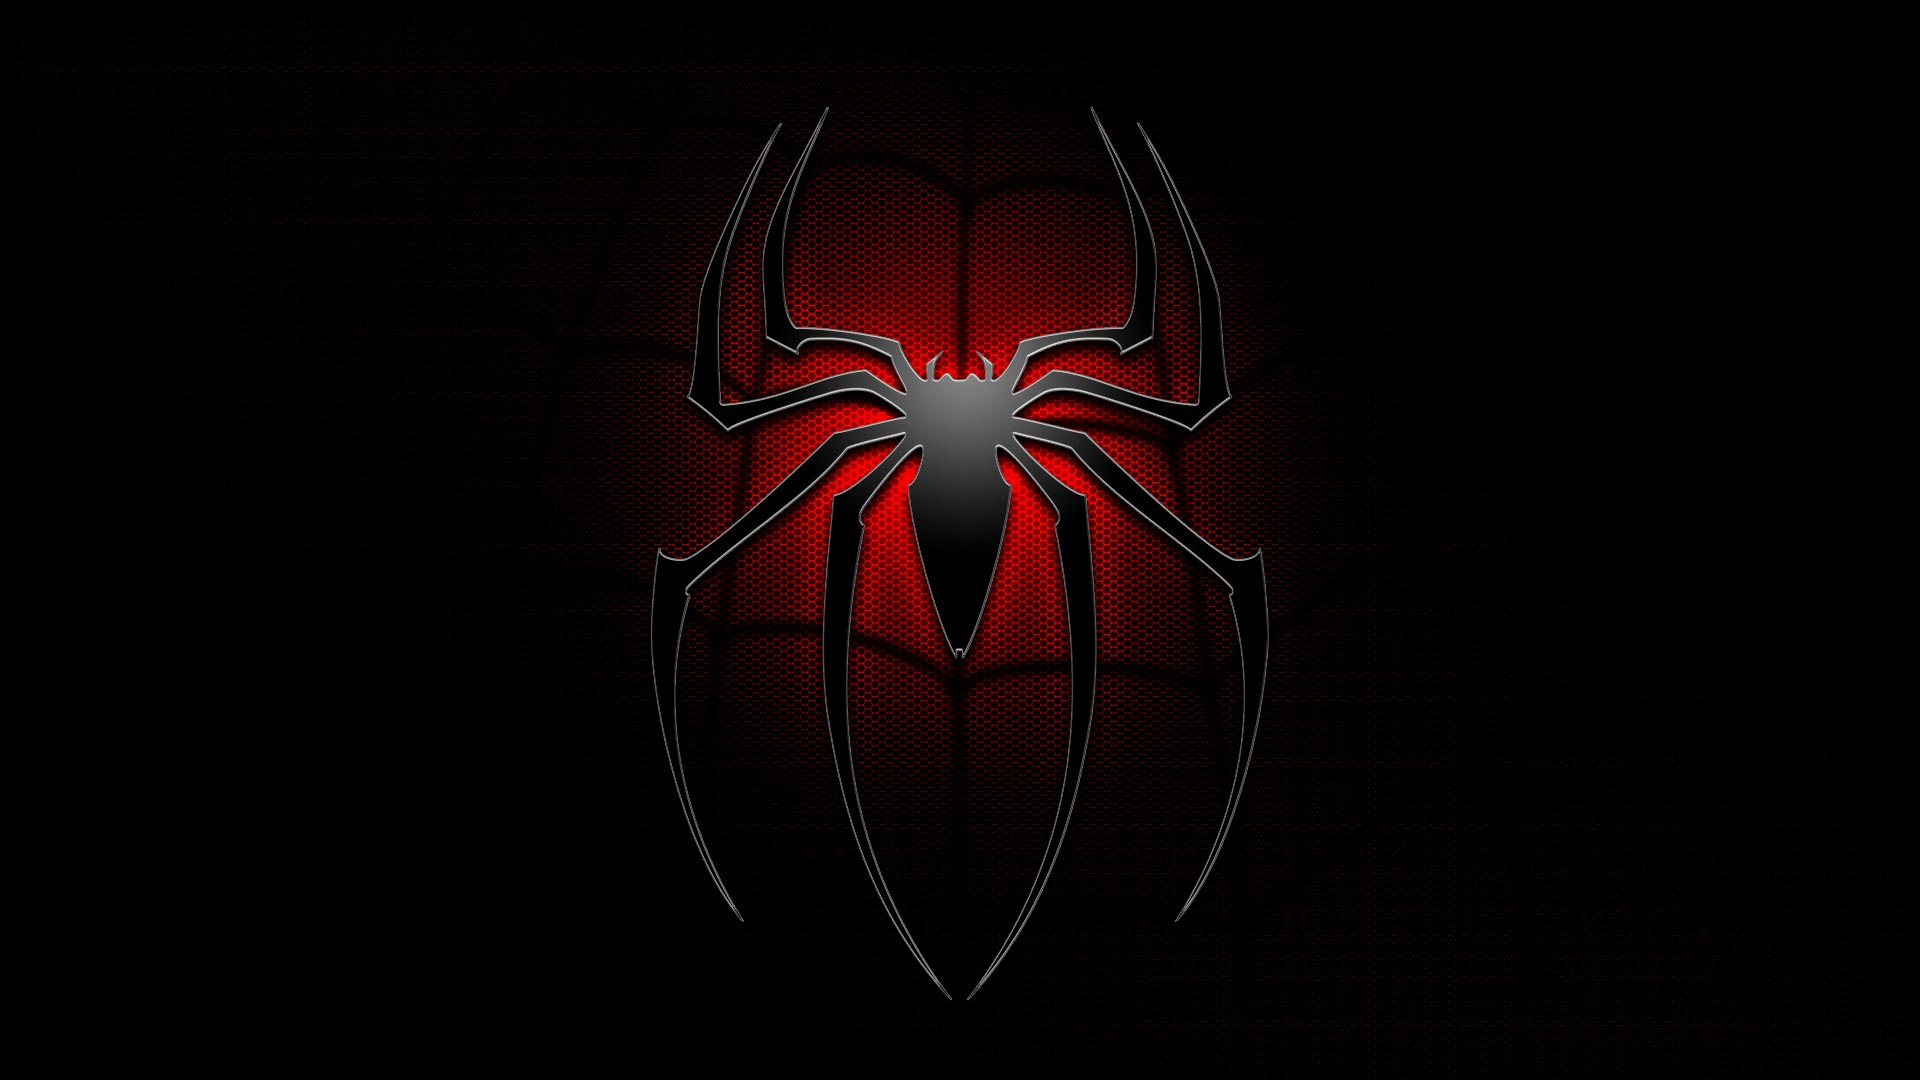 Spiderman Logo Wallpaper 39630 1920x1080 px HDWallSourcecom